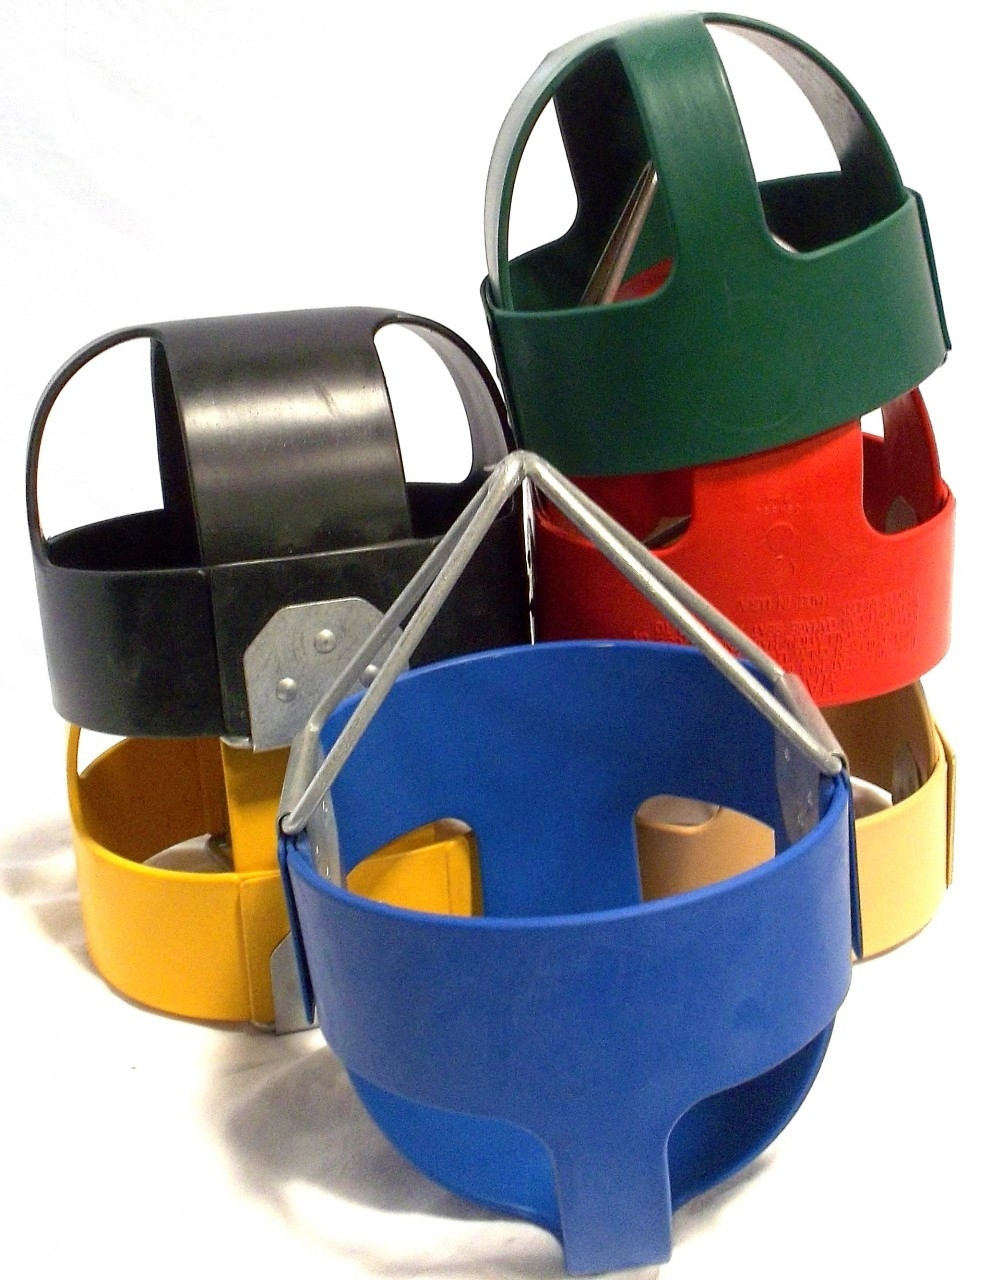 Tot Full Bucket Rubber Seat With Insert-usa-commercial - S100 - Toys Swings & Slides S100